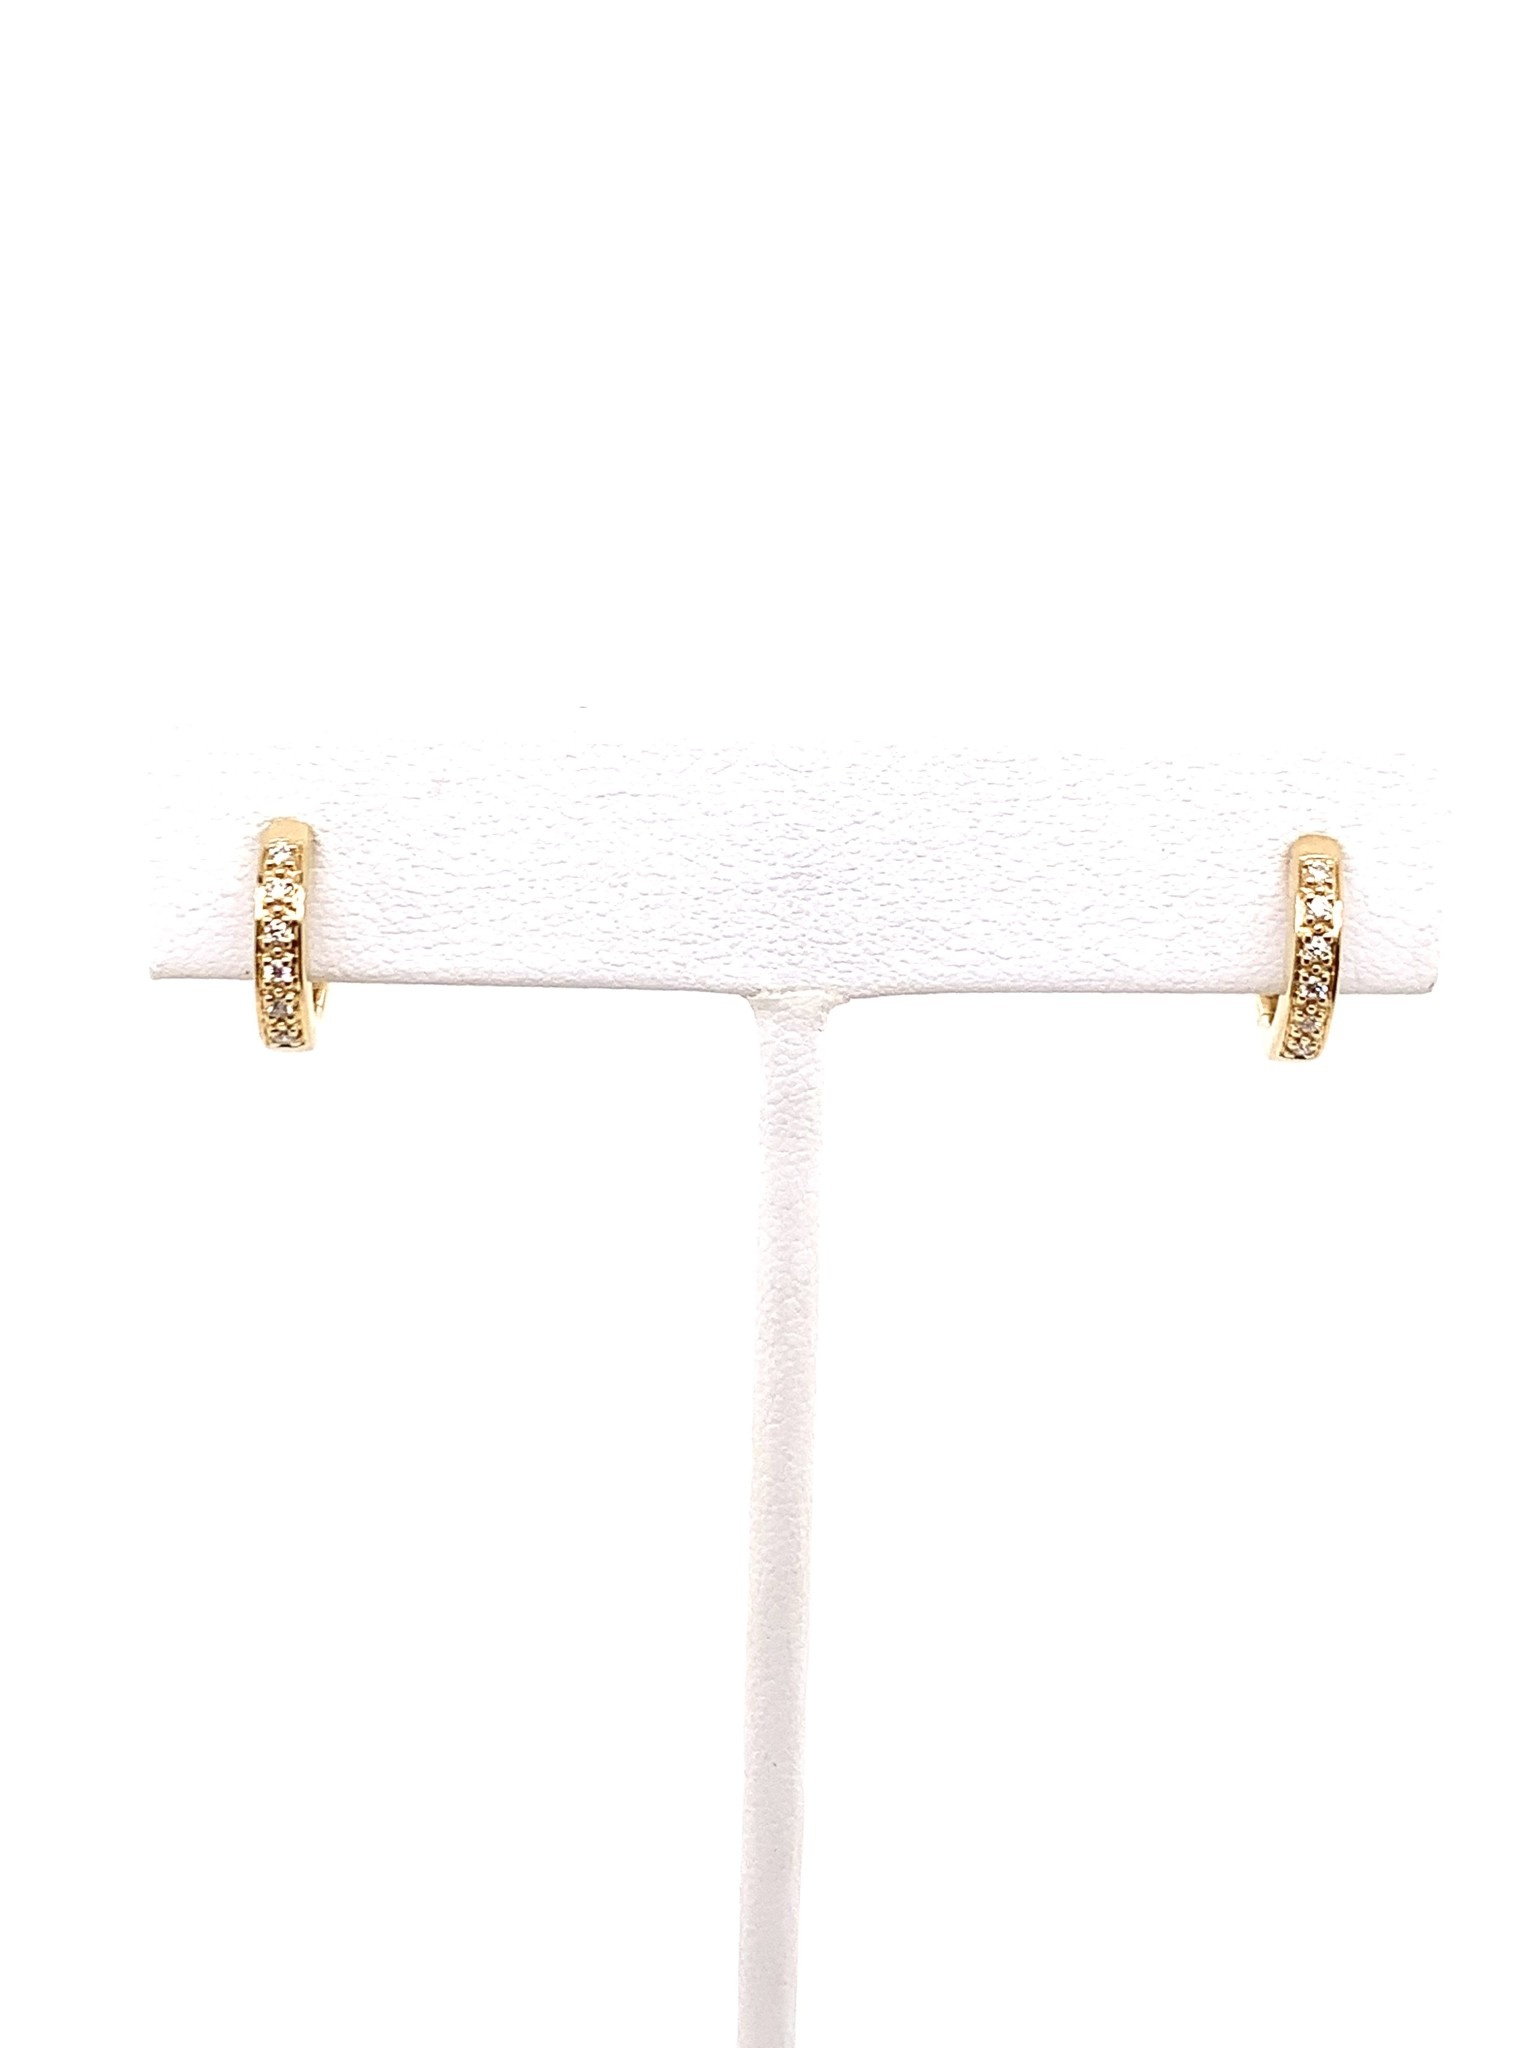 14k yellow gold 0.10ct diamond huggie earrings